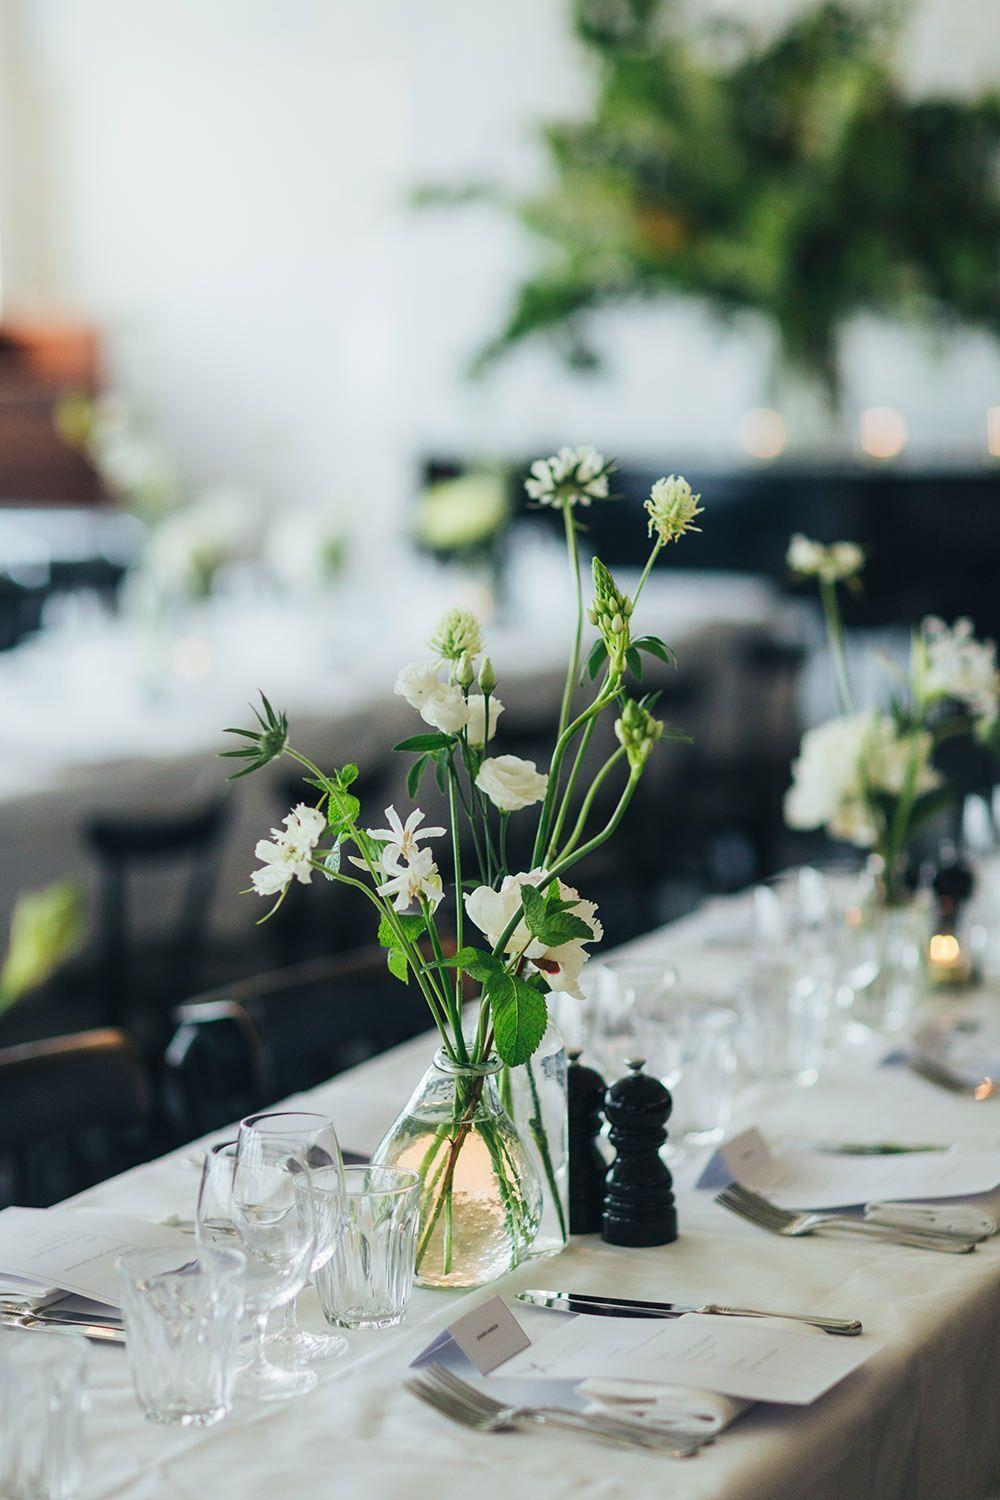 Wedding arrangements: 70 ideas for table, flowers and decoration 37